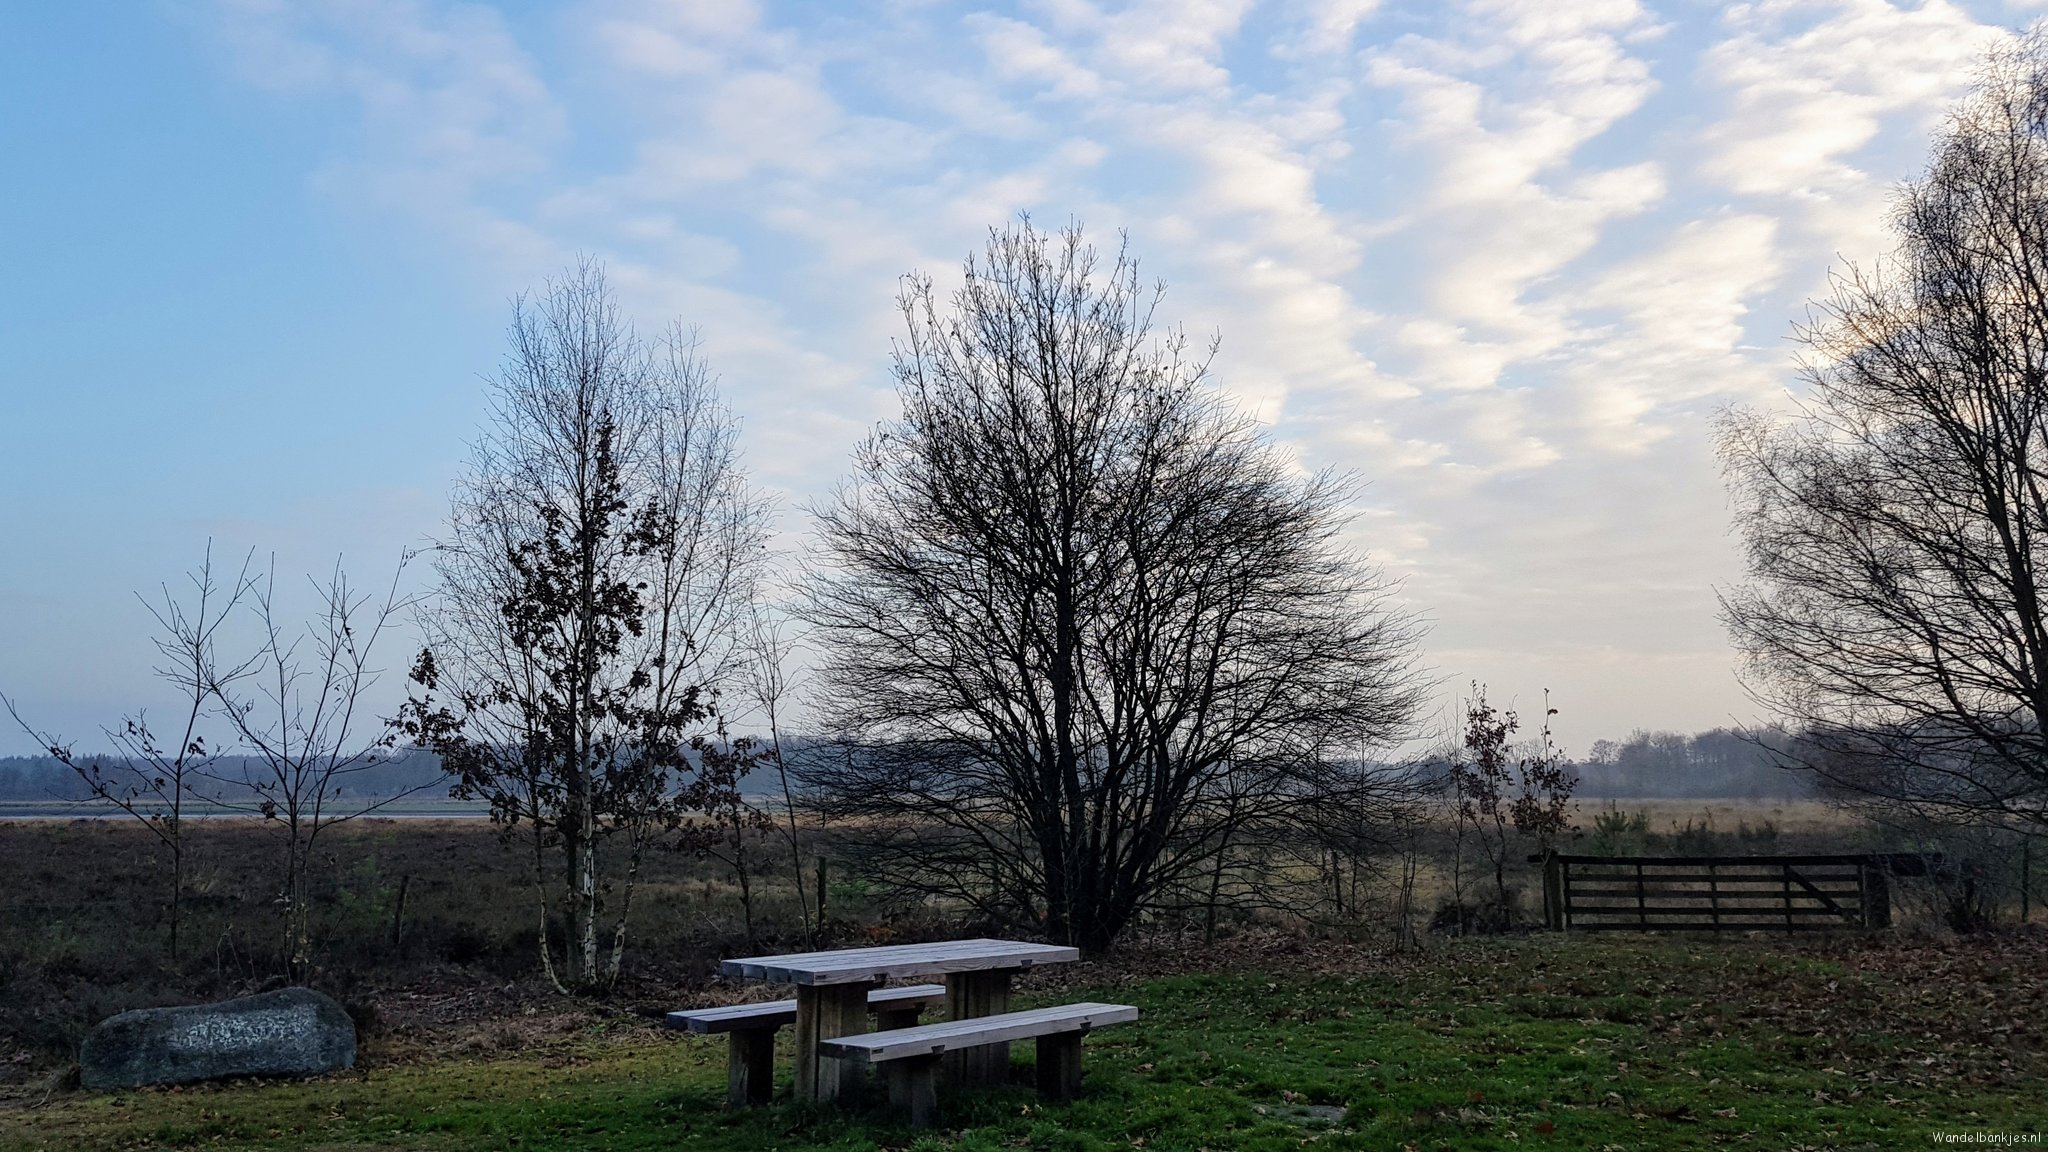 rt-wolfswandelplan-view-over-black-water-or-elpermeer-bij-schoonloo-walking-benches-https-t-co-2g2htlc0at